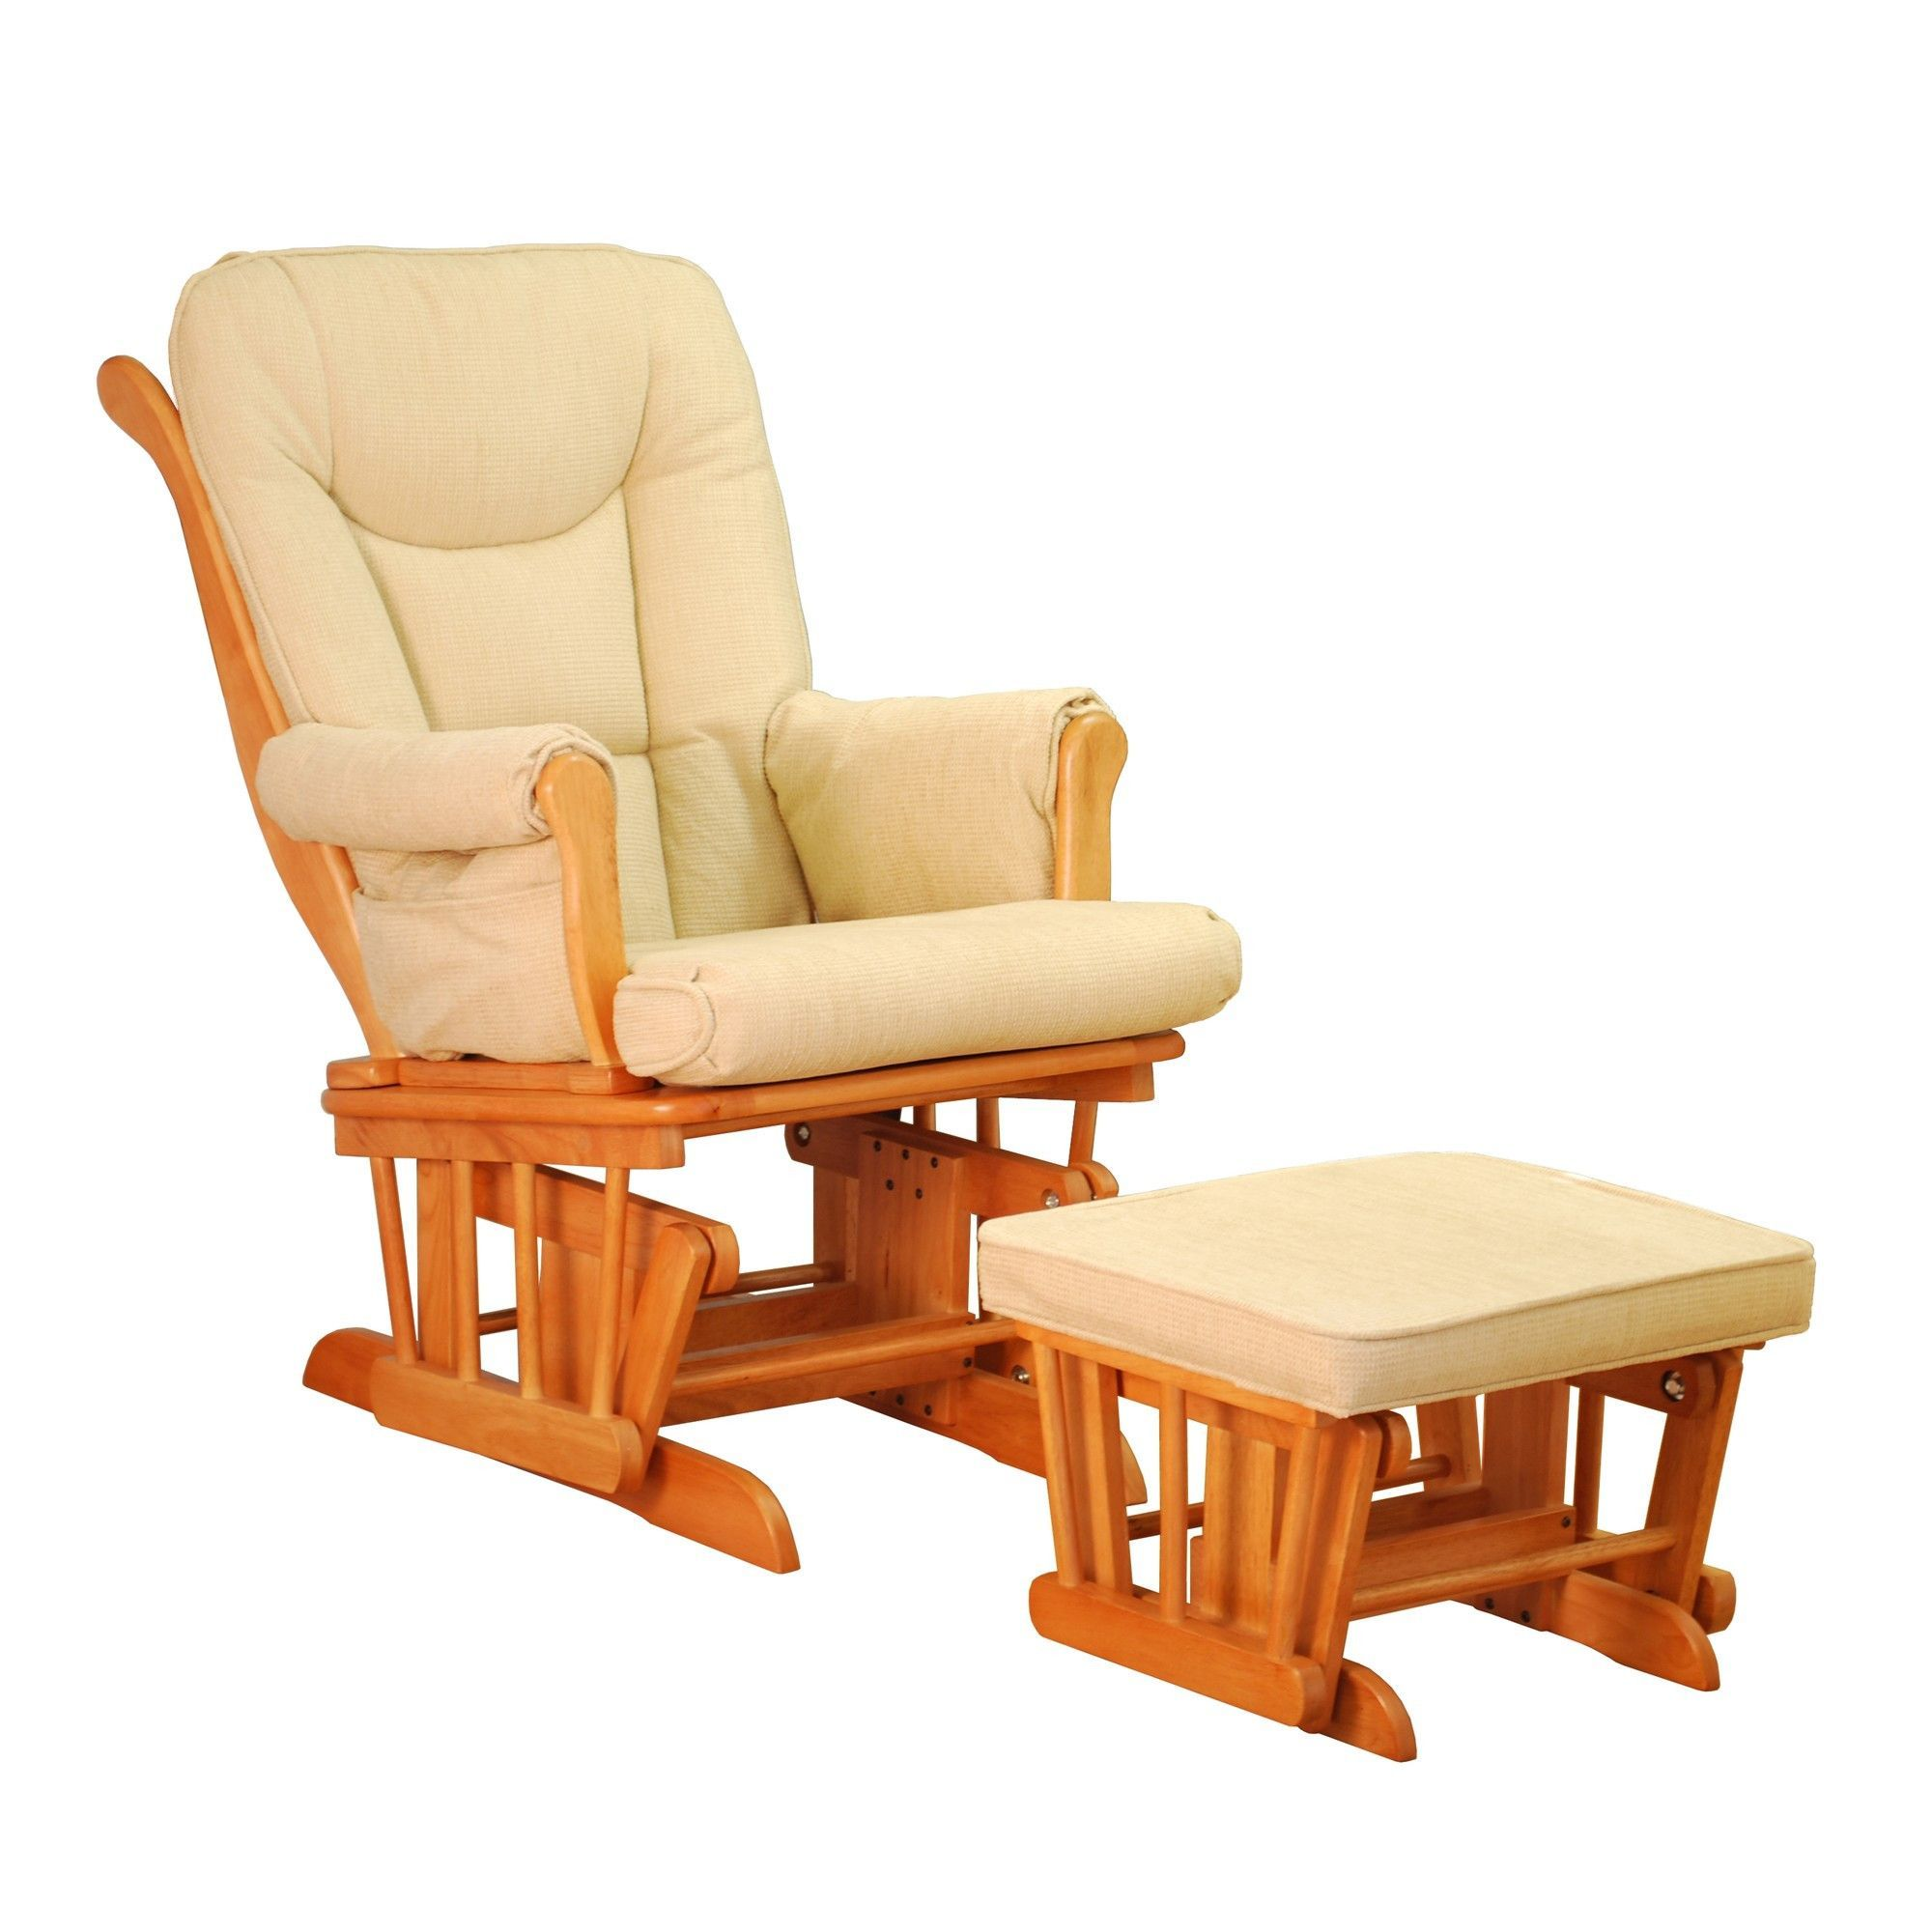 Best The Sleigh Design Glider Provides Comfortable Seating In 400 x 300